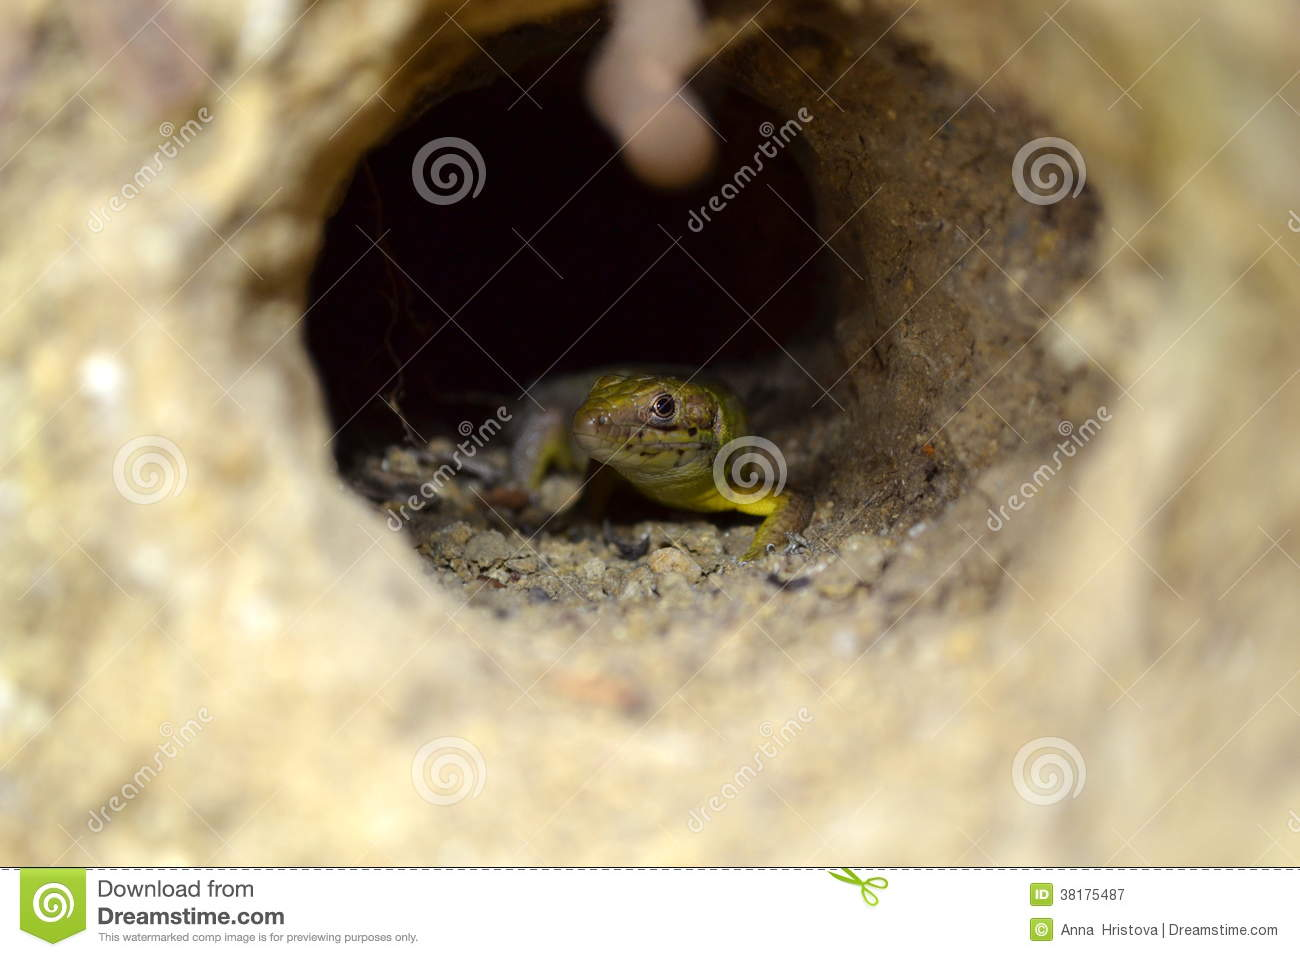 Lizard in a tunnel in the gound